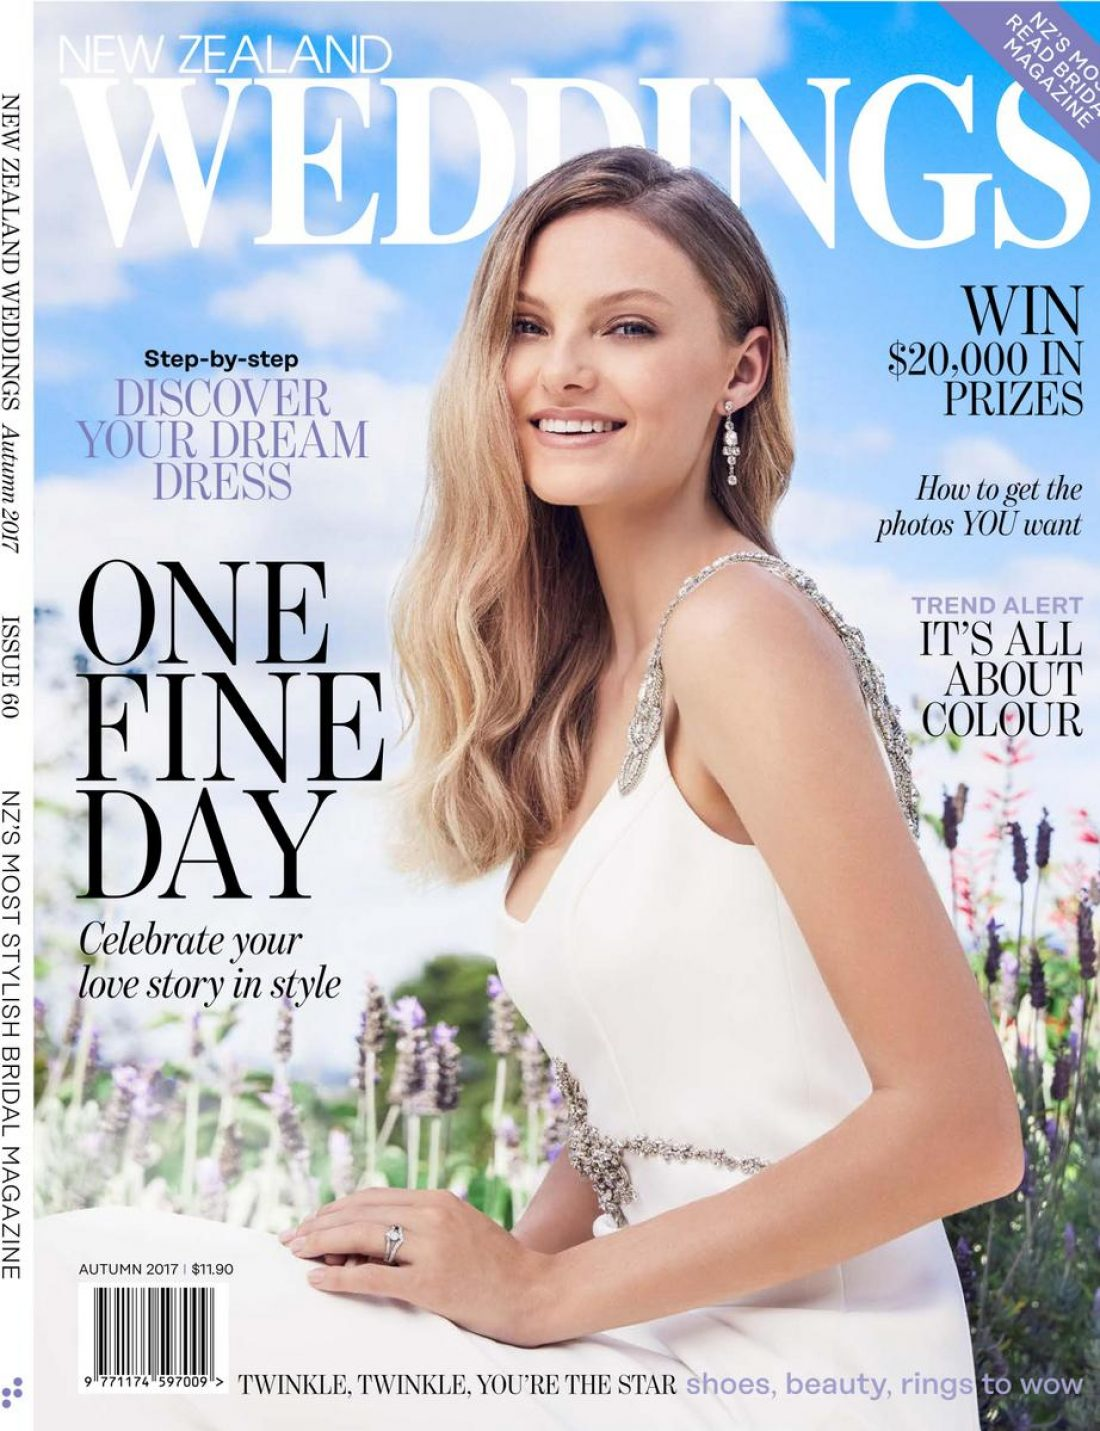 Zoe photographed by Carolyn Haslett for the cover of NZ Weddings Magazine wearing Anna Schimmel ; Mua : Natalie Dent